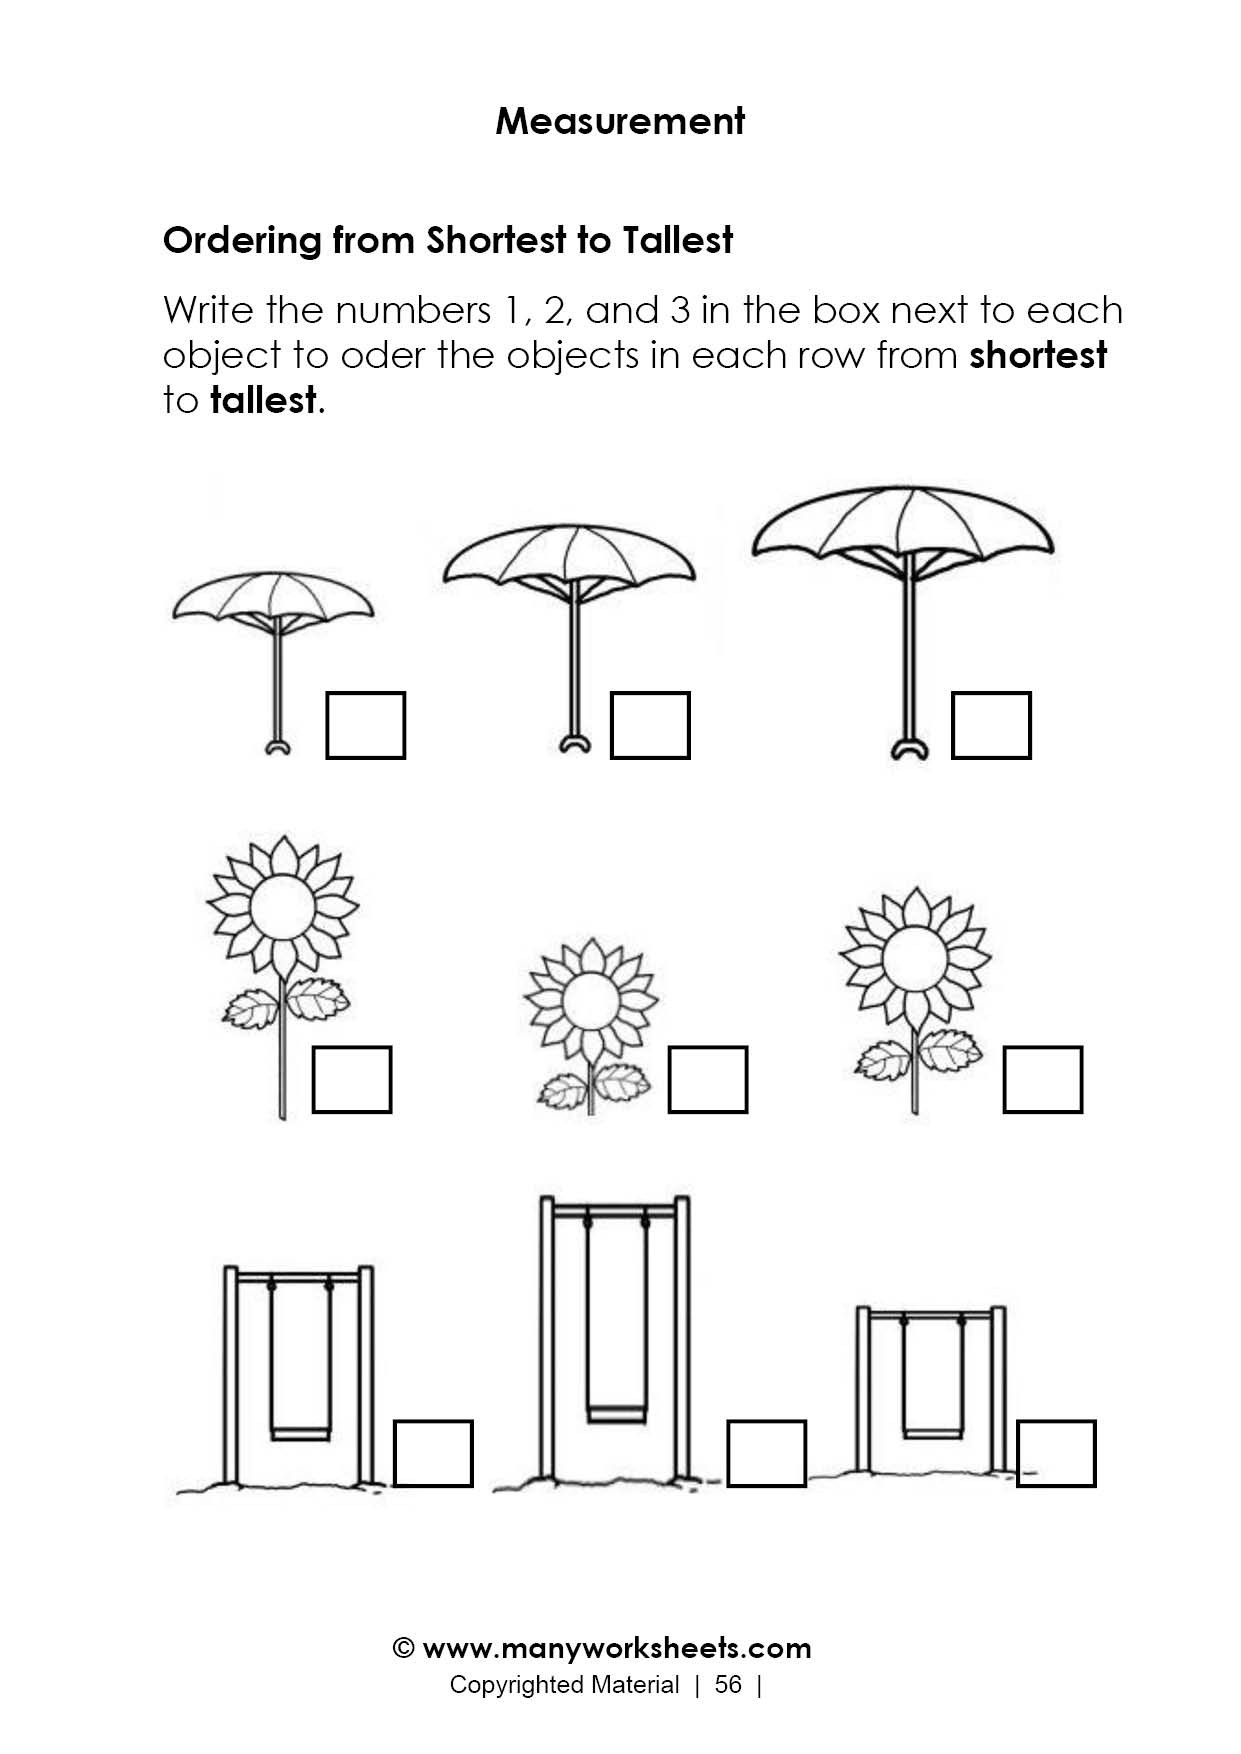 Free Measurement Worksheets Grade 1 Length Measurement Worksheet – ordering From Shortest to Tallest